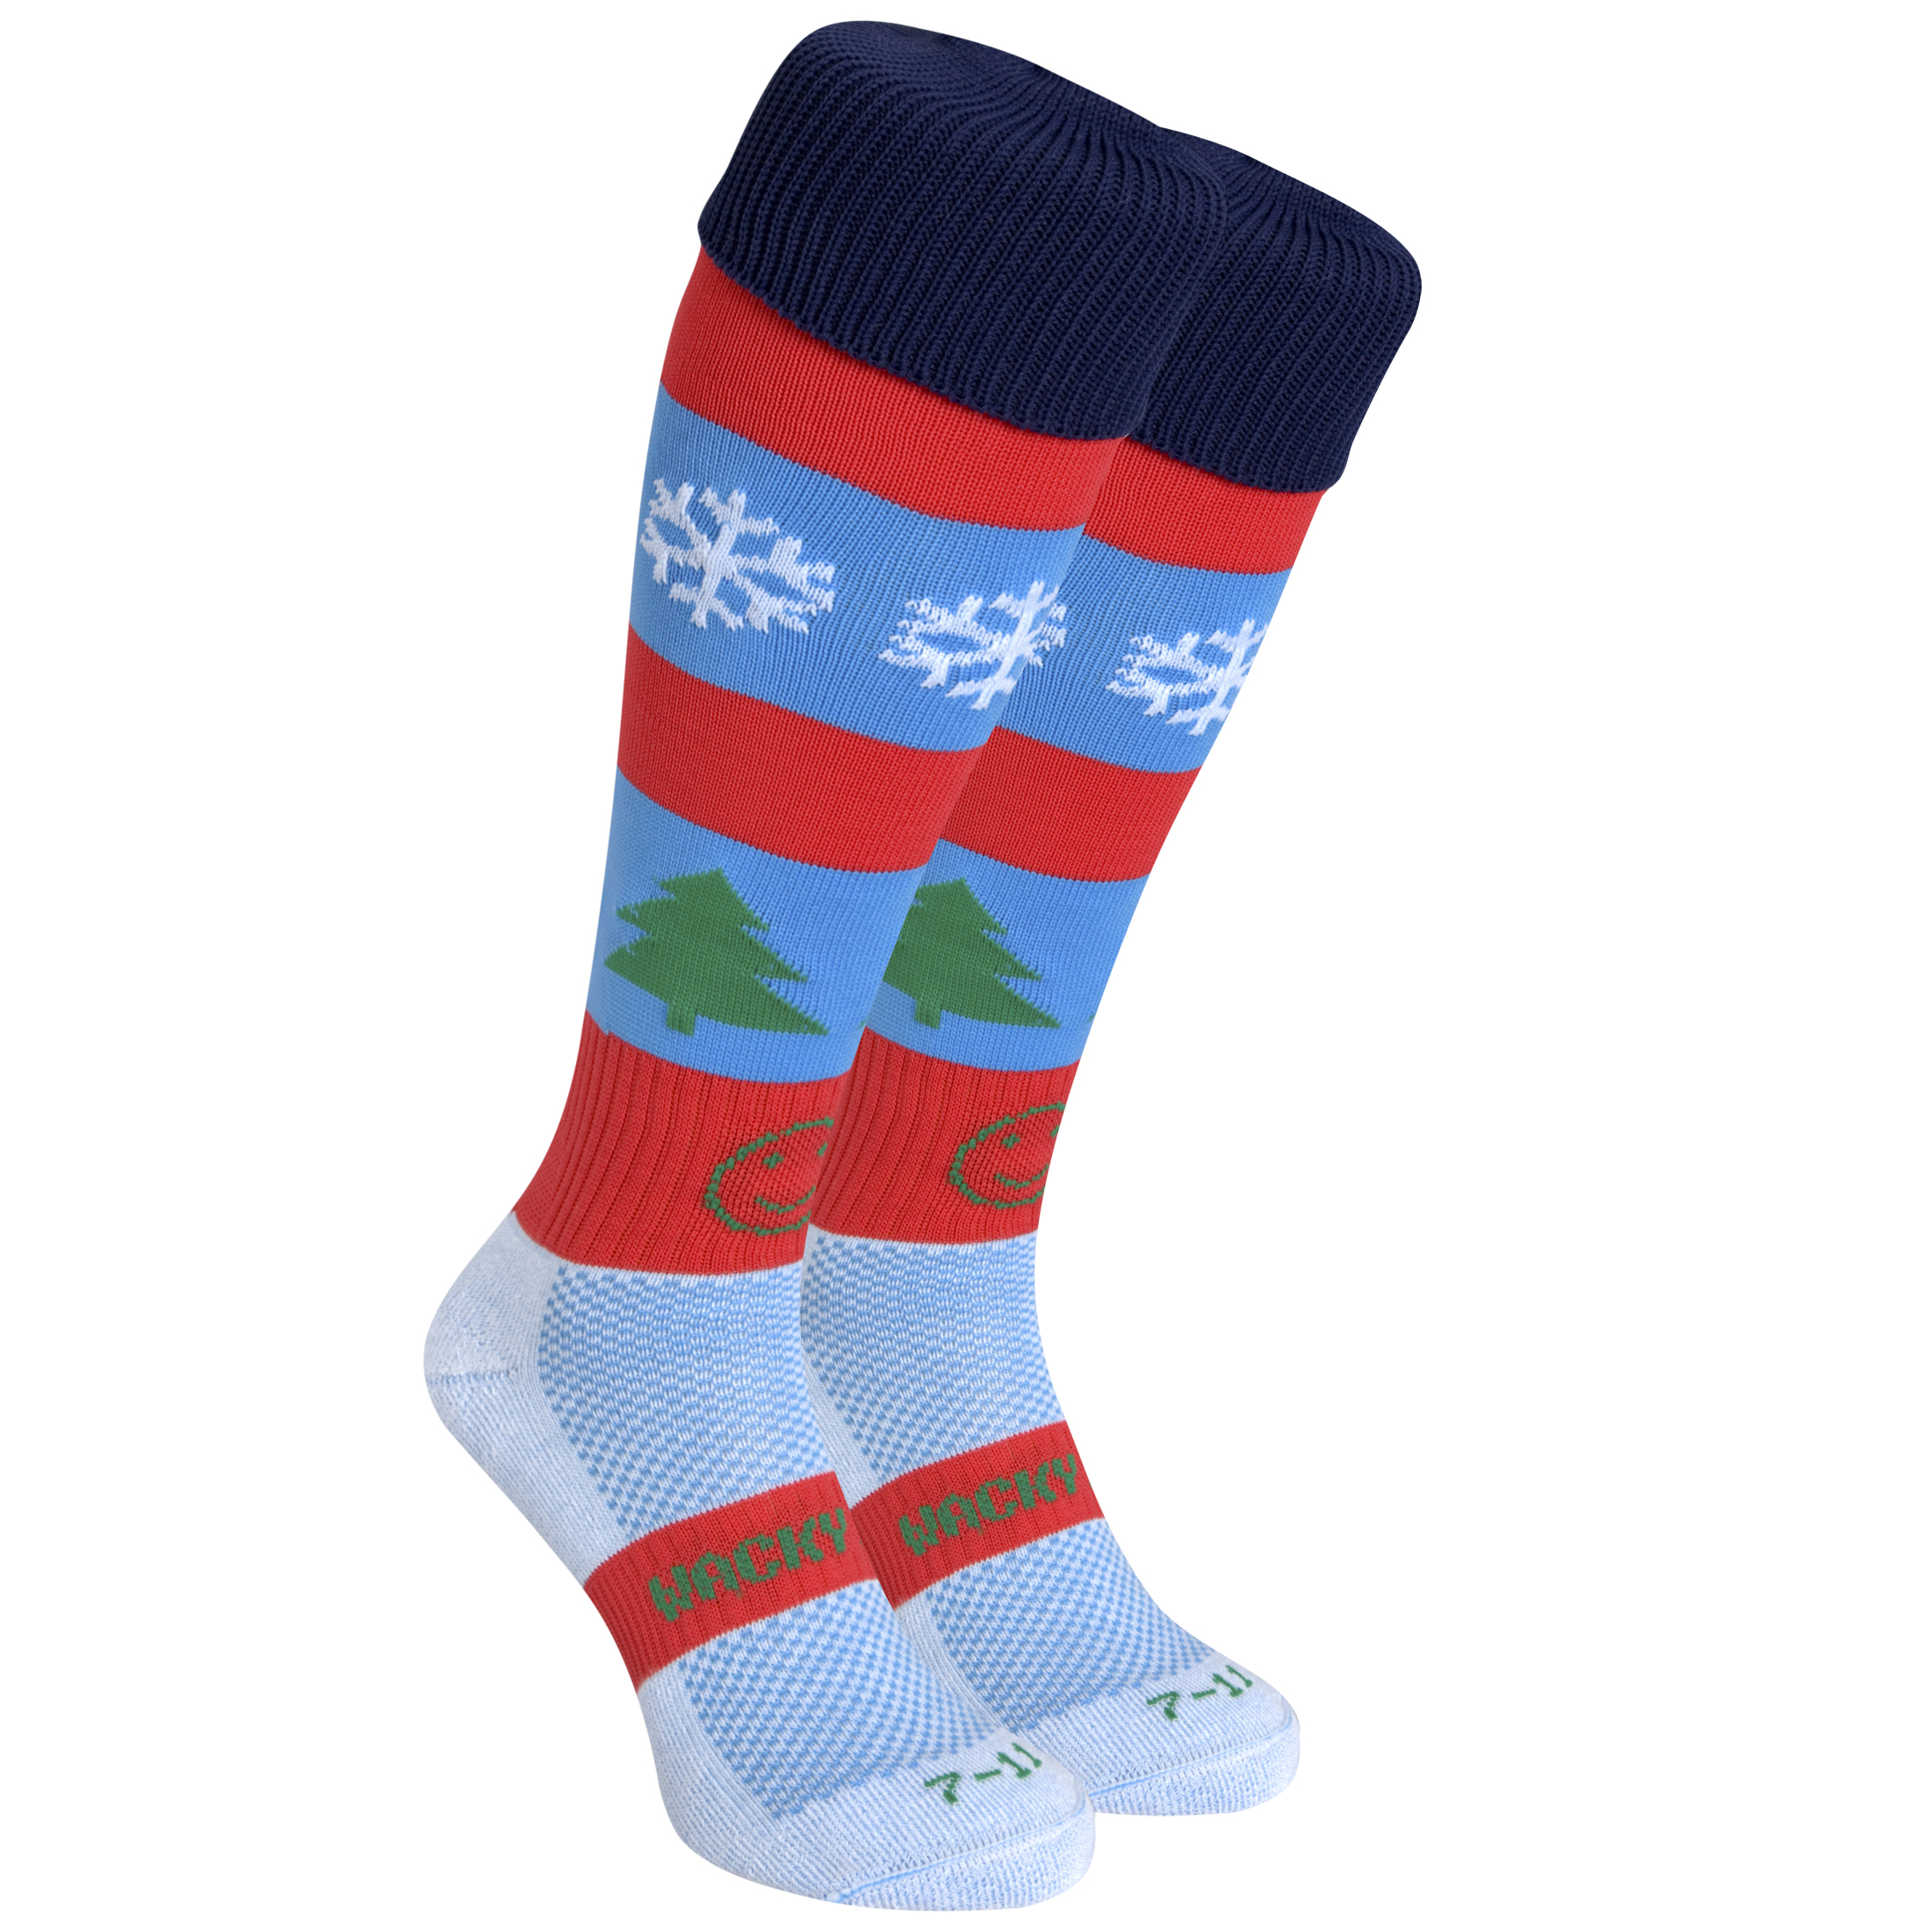 WackySox Festive Frolics Socks - Red/Black/Blue - Size 2-6